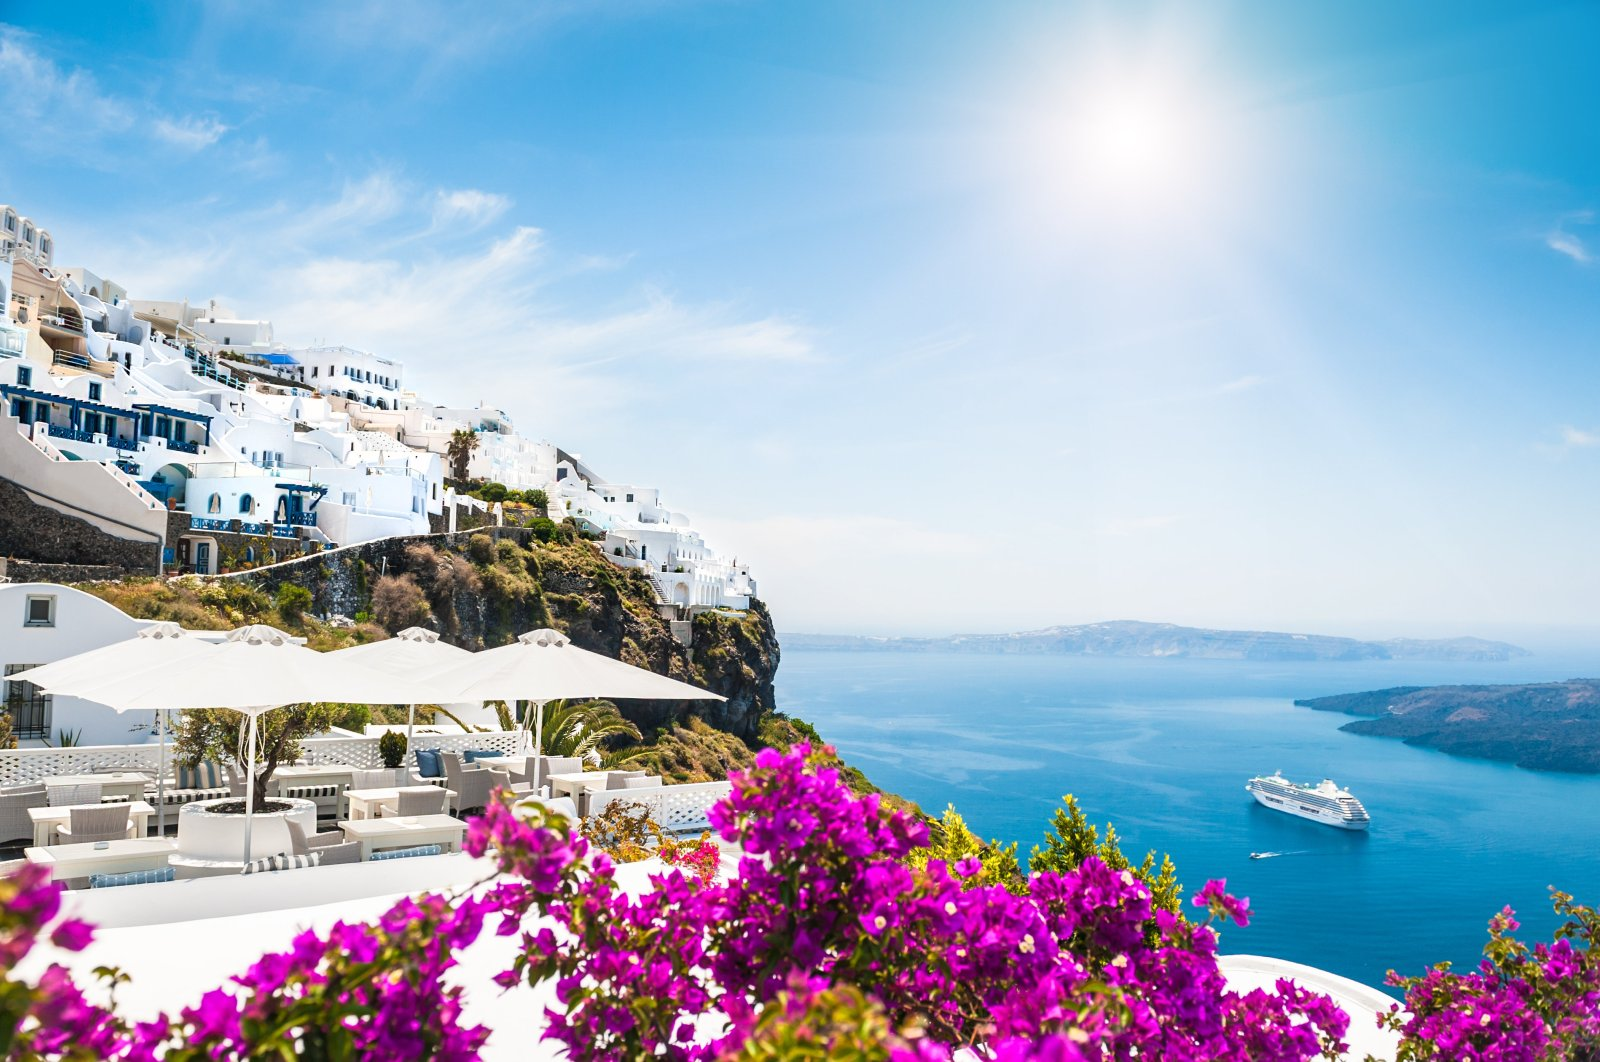 A general view of the Greek island of Santorini. (iStock Photo)